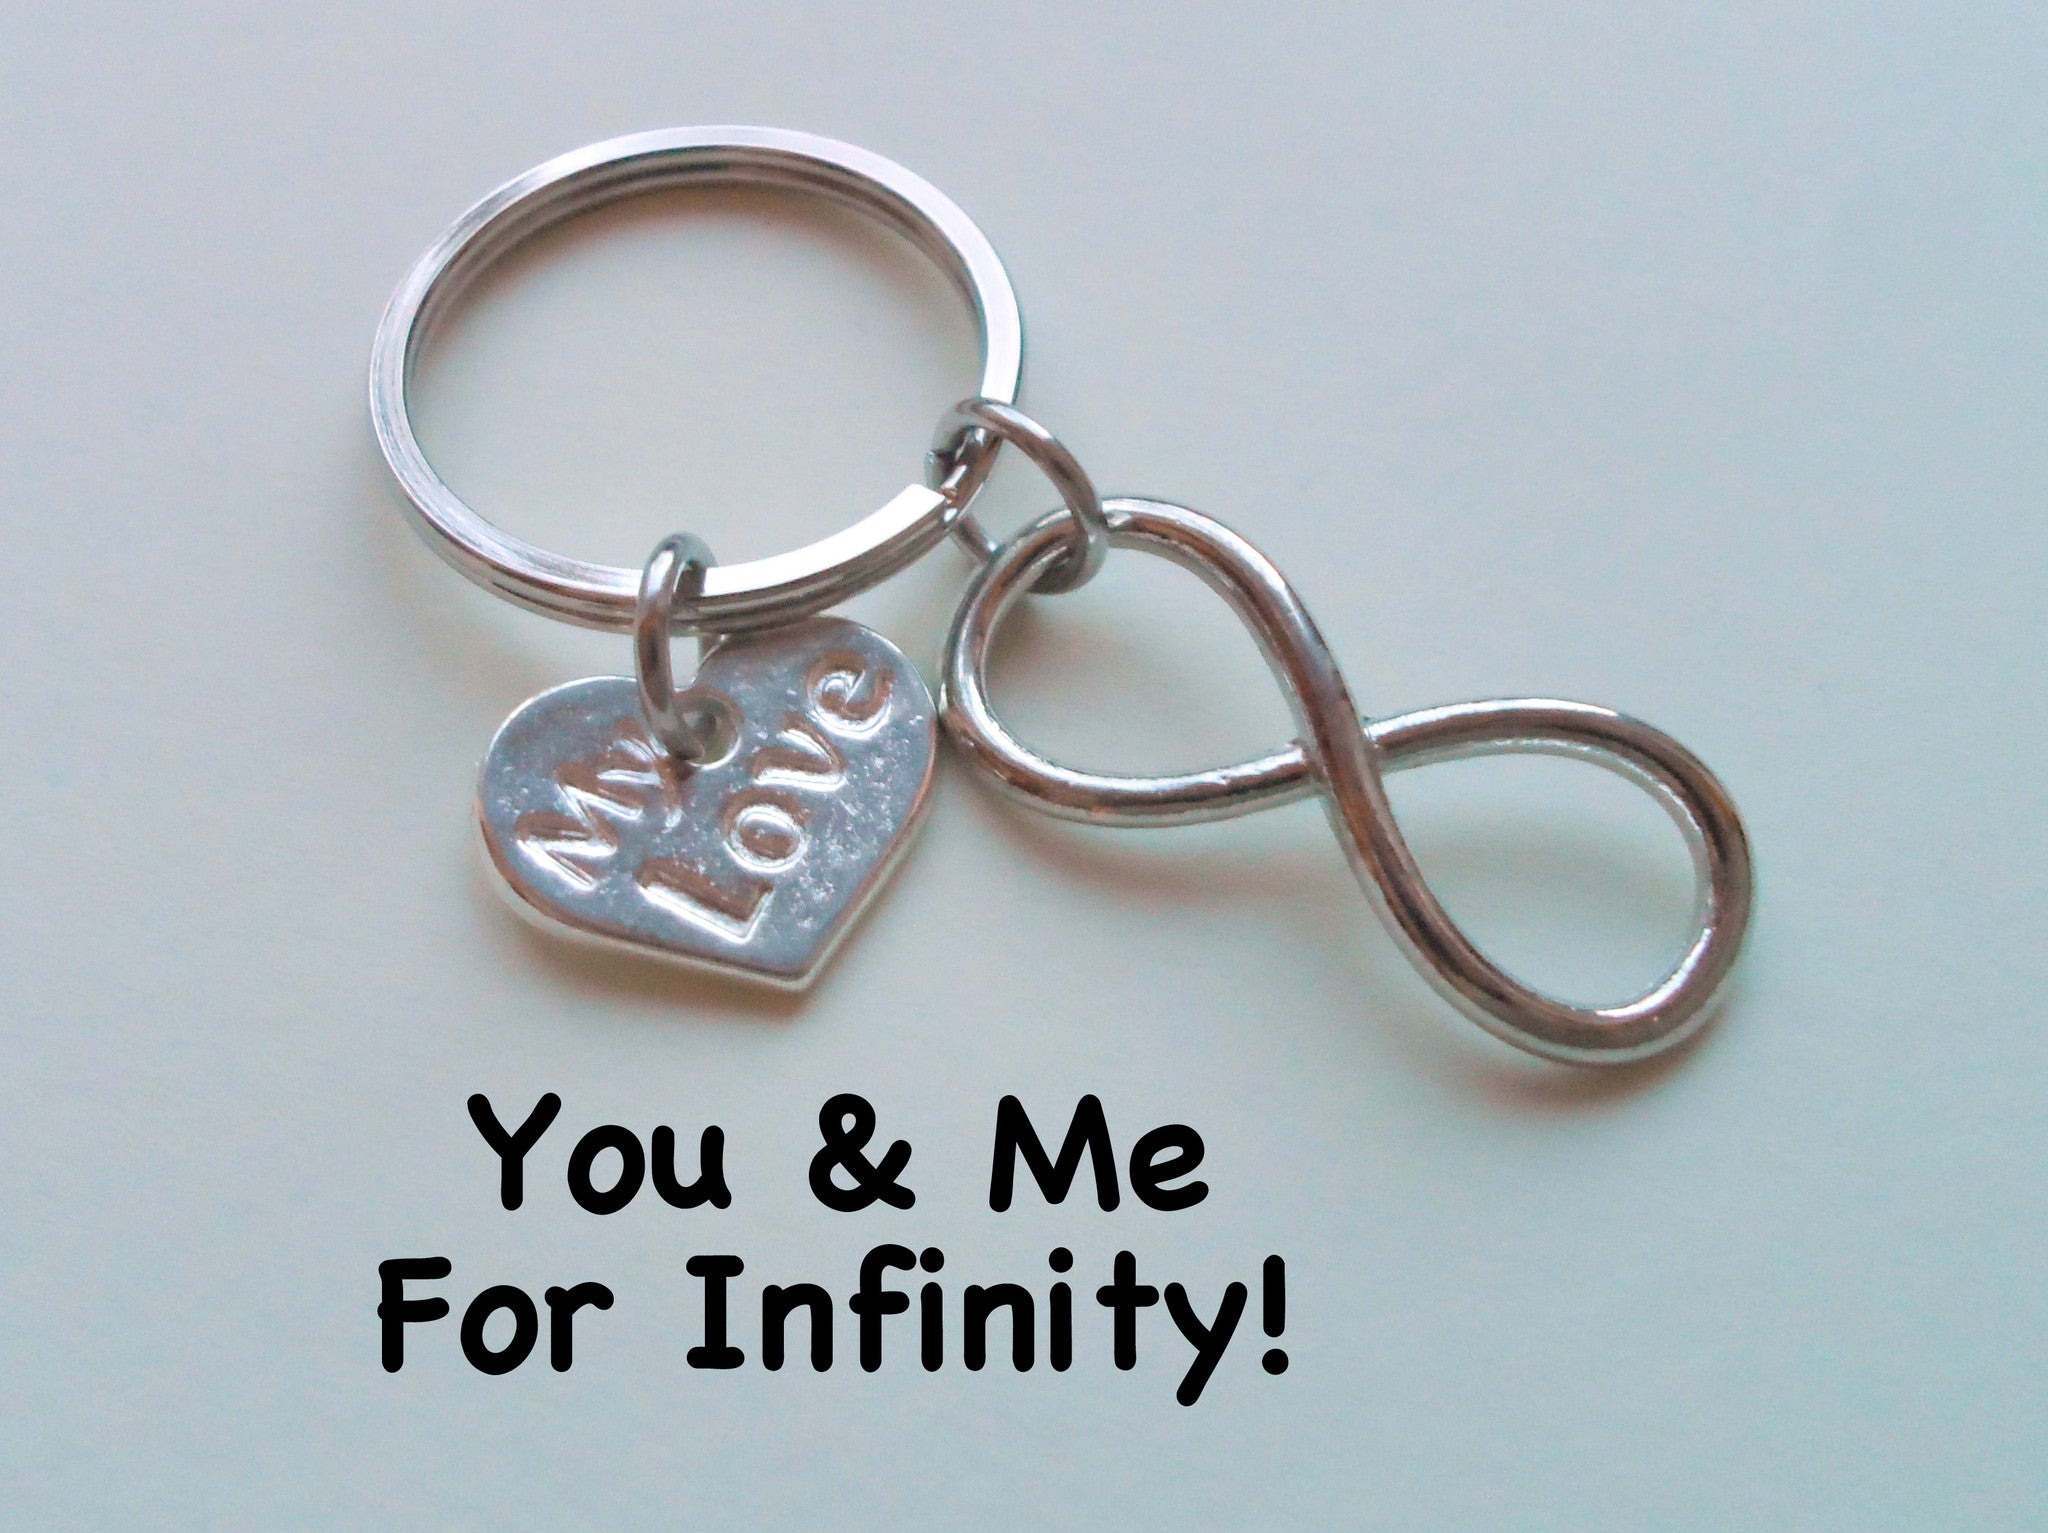 My Love Infinity Symbol Keychain You And Me For Infinity